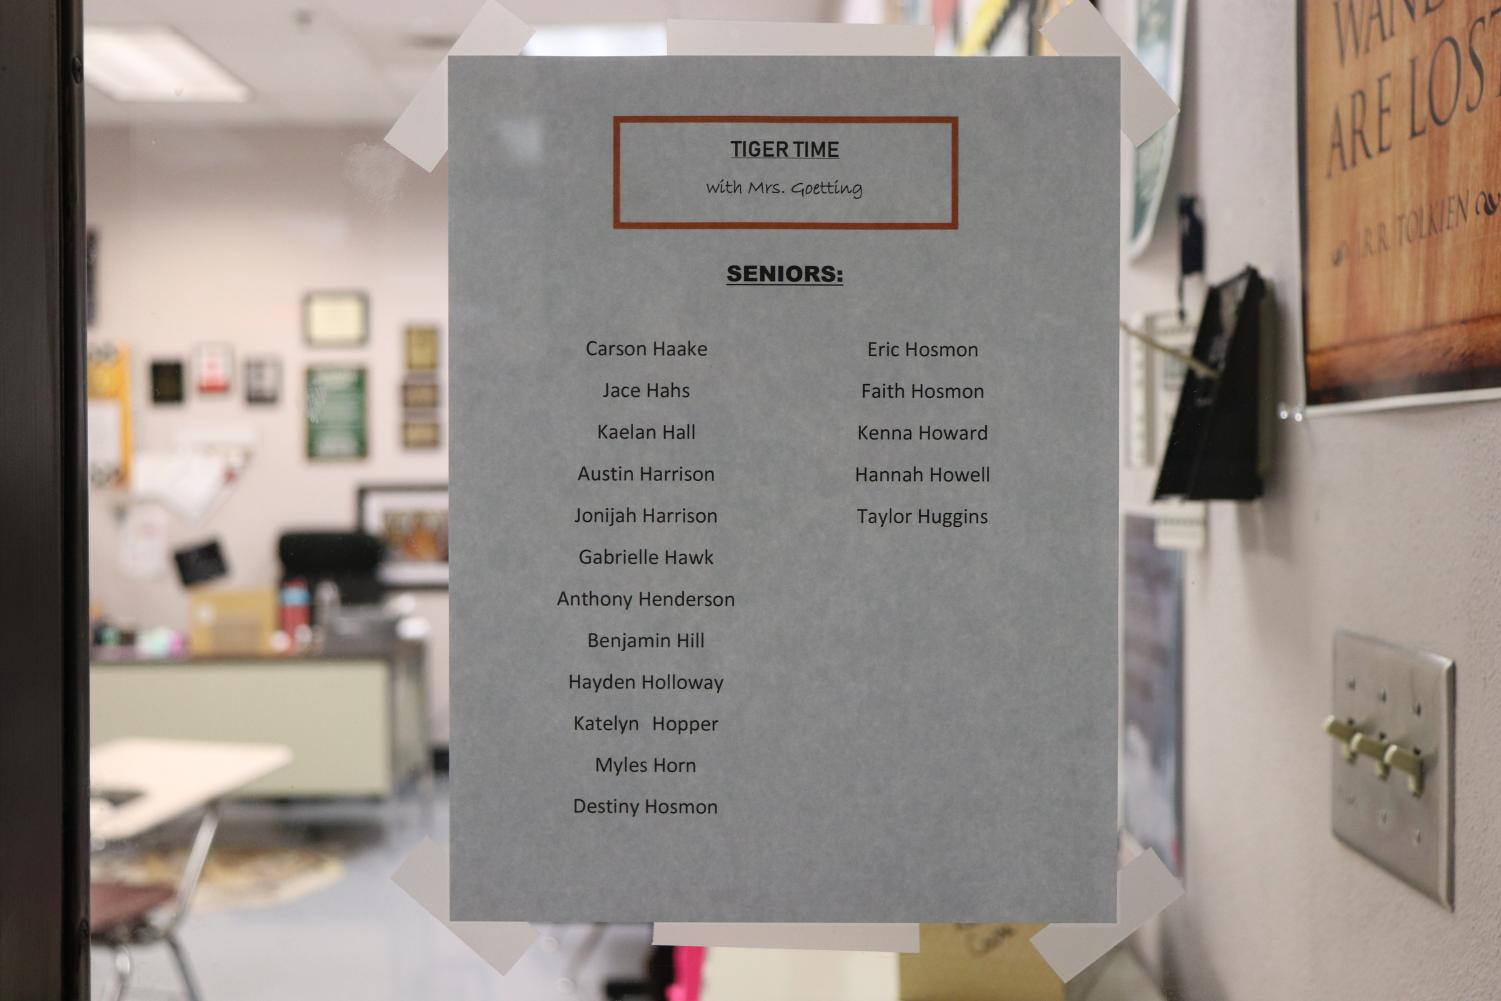 Each teacher has a list of their Tiger Time students posted on their door.